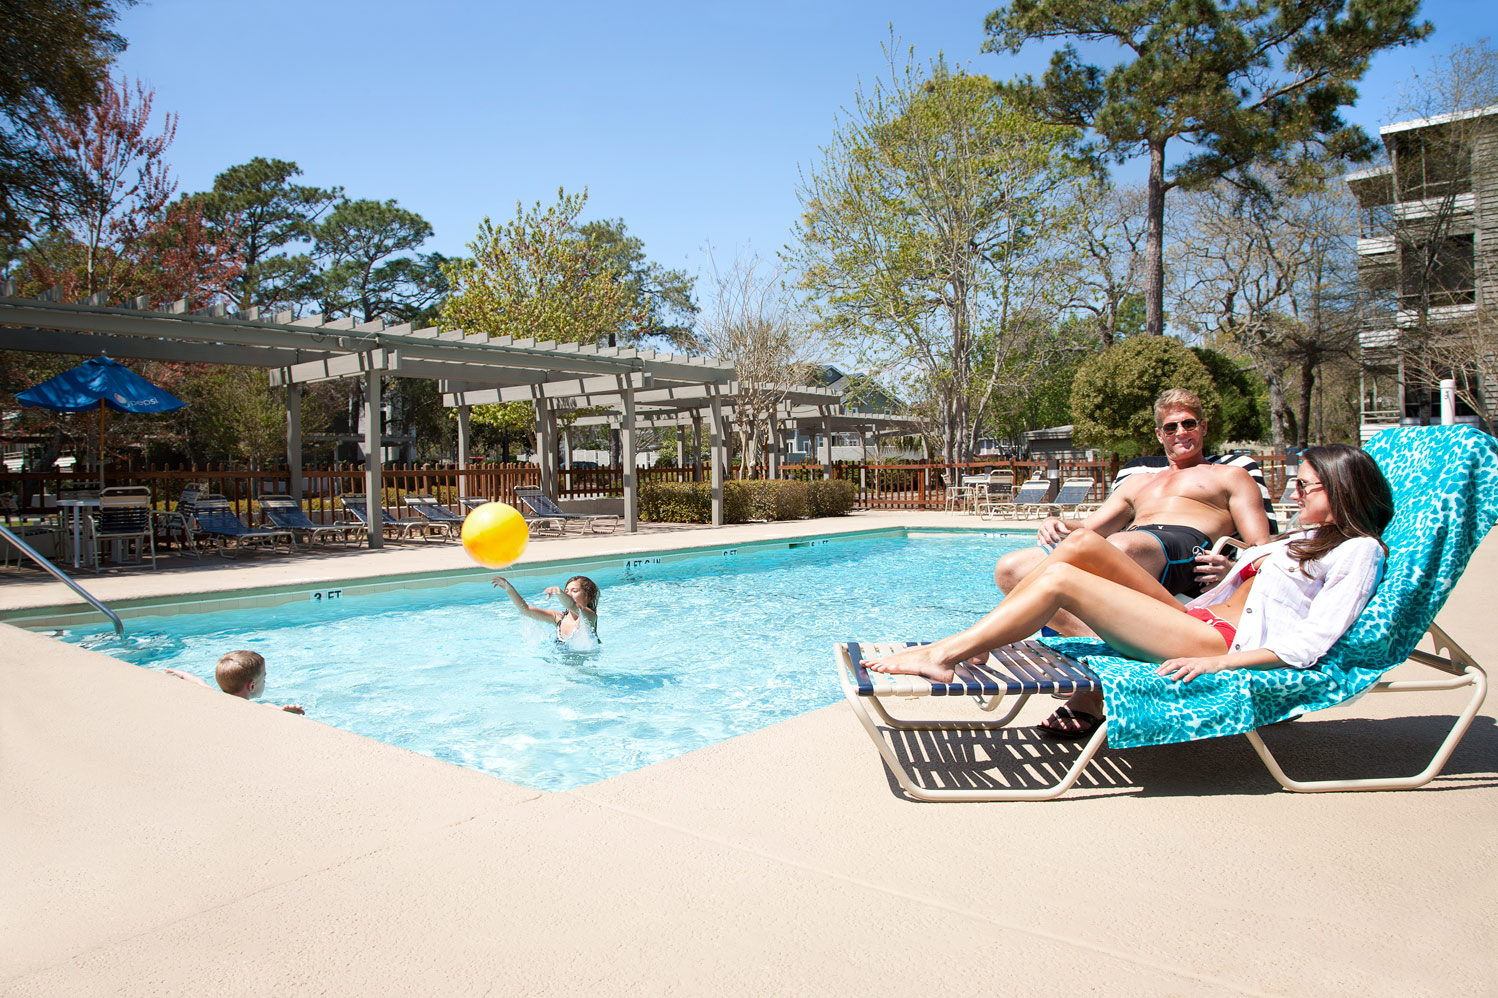 The Lodge Pool is fun for a family afternoon in the sun!